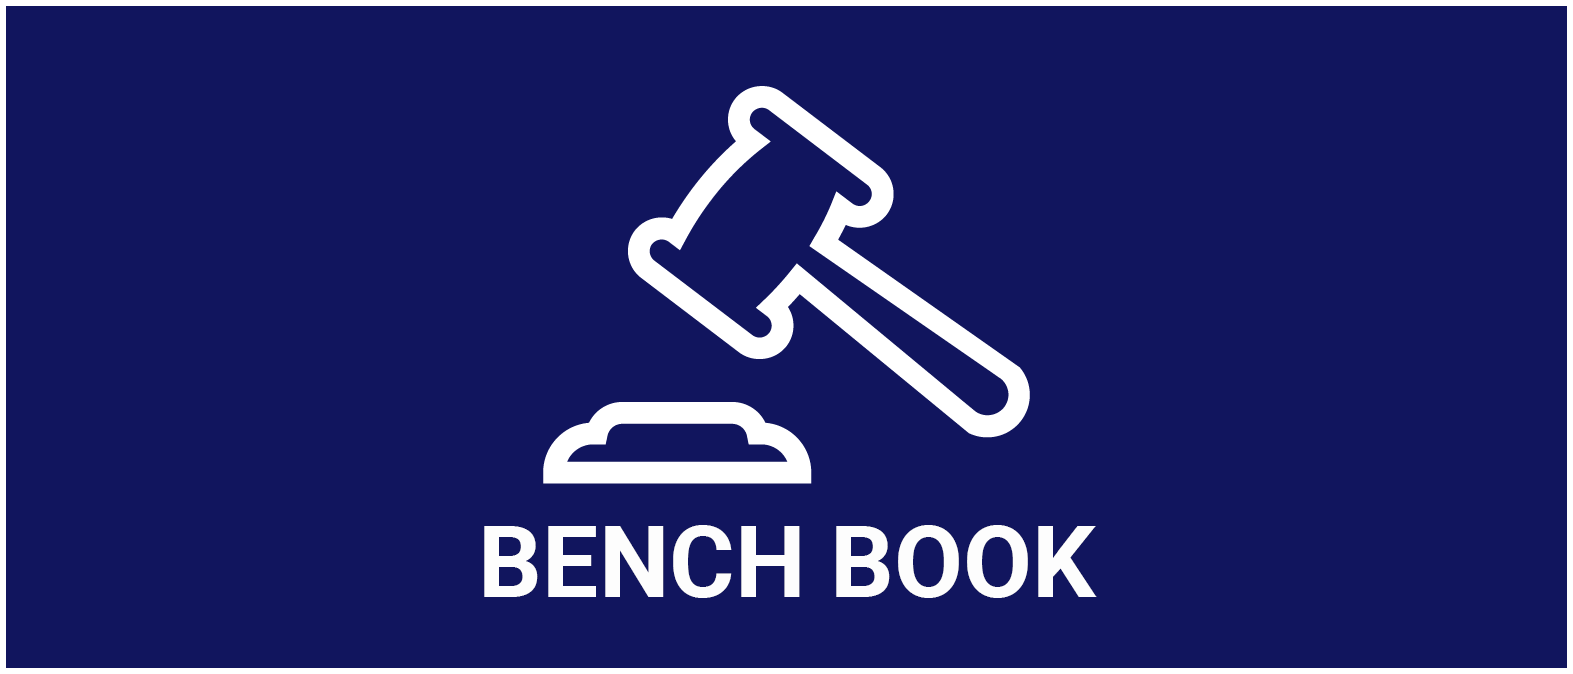 Benchbook Icon